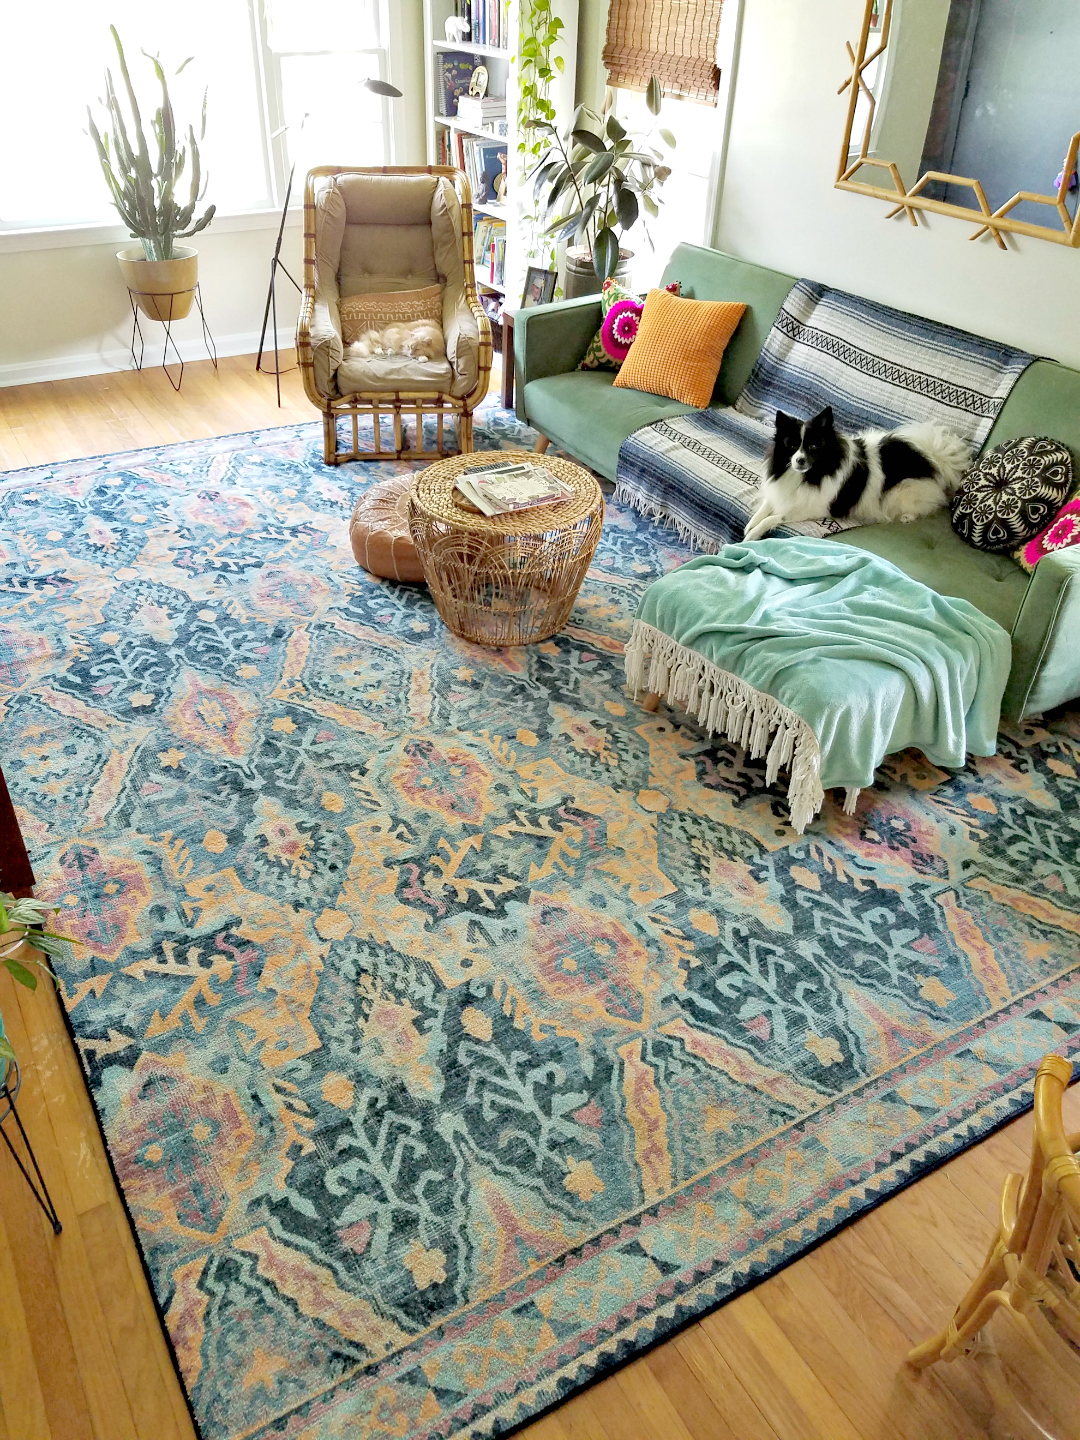 Choosing A Gorgeous Rug For A Moody Boho Living Room Design - TheBohoAbode